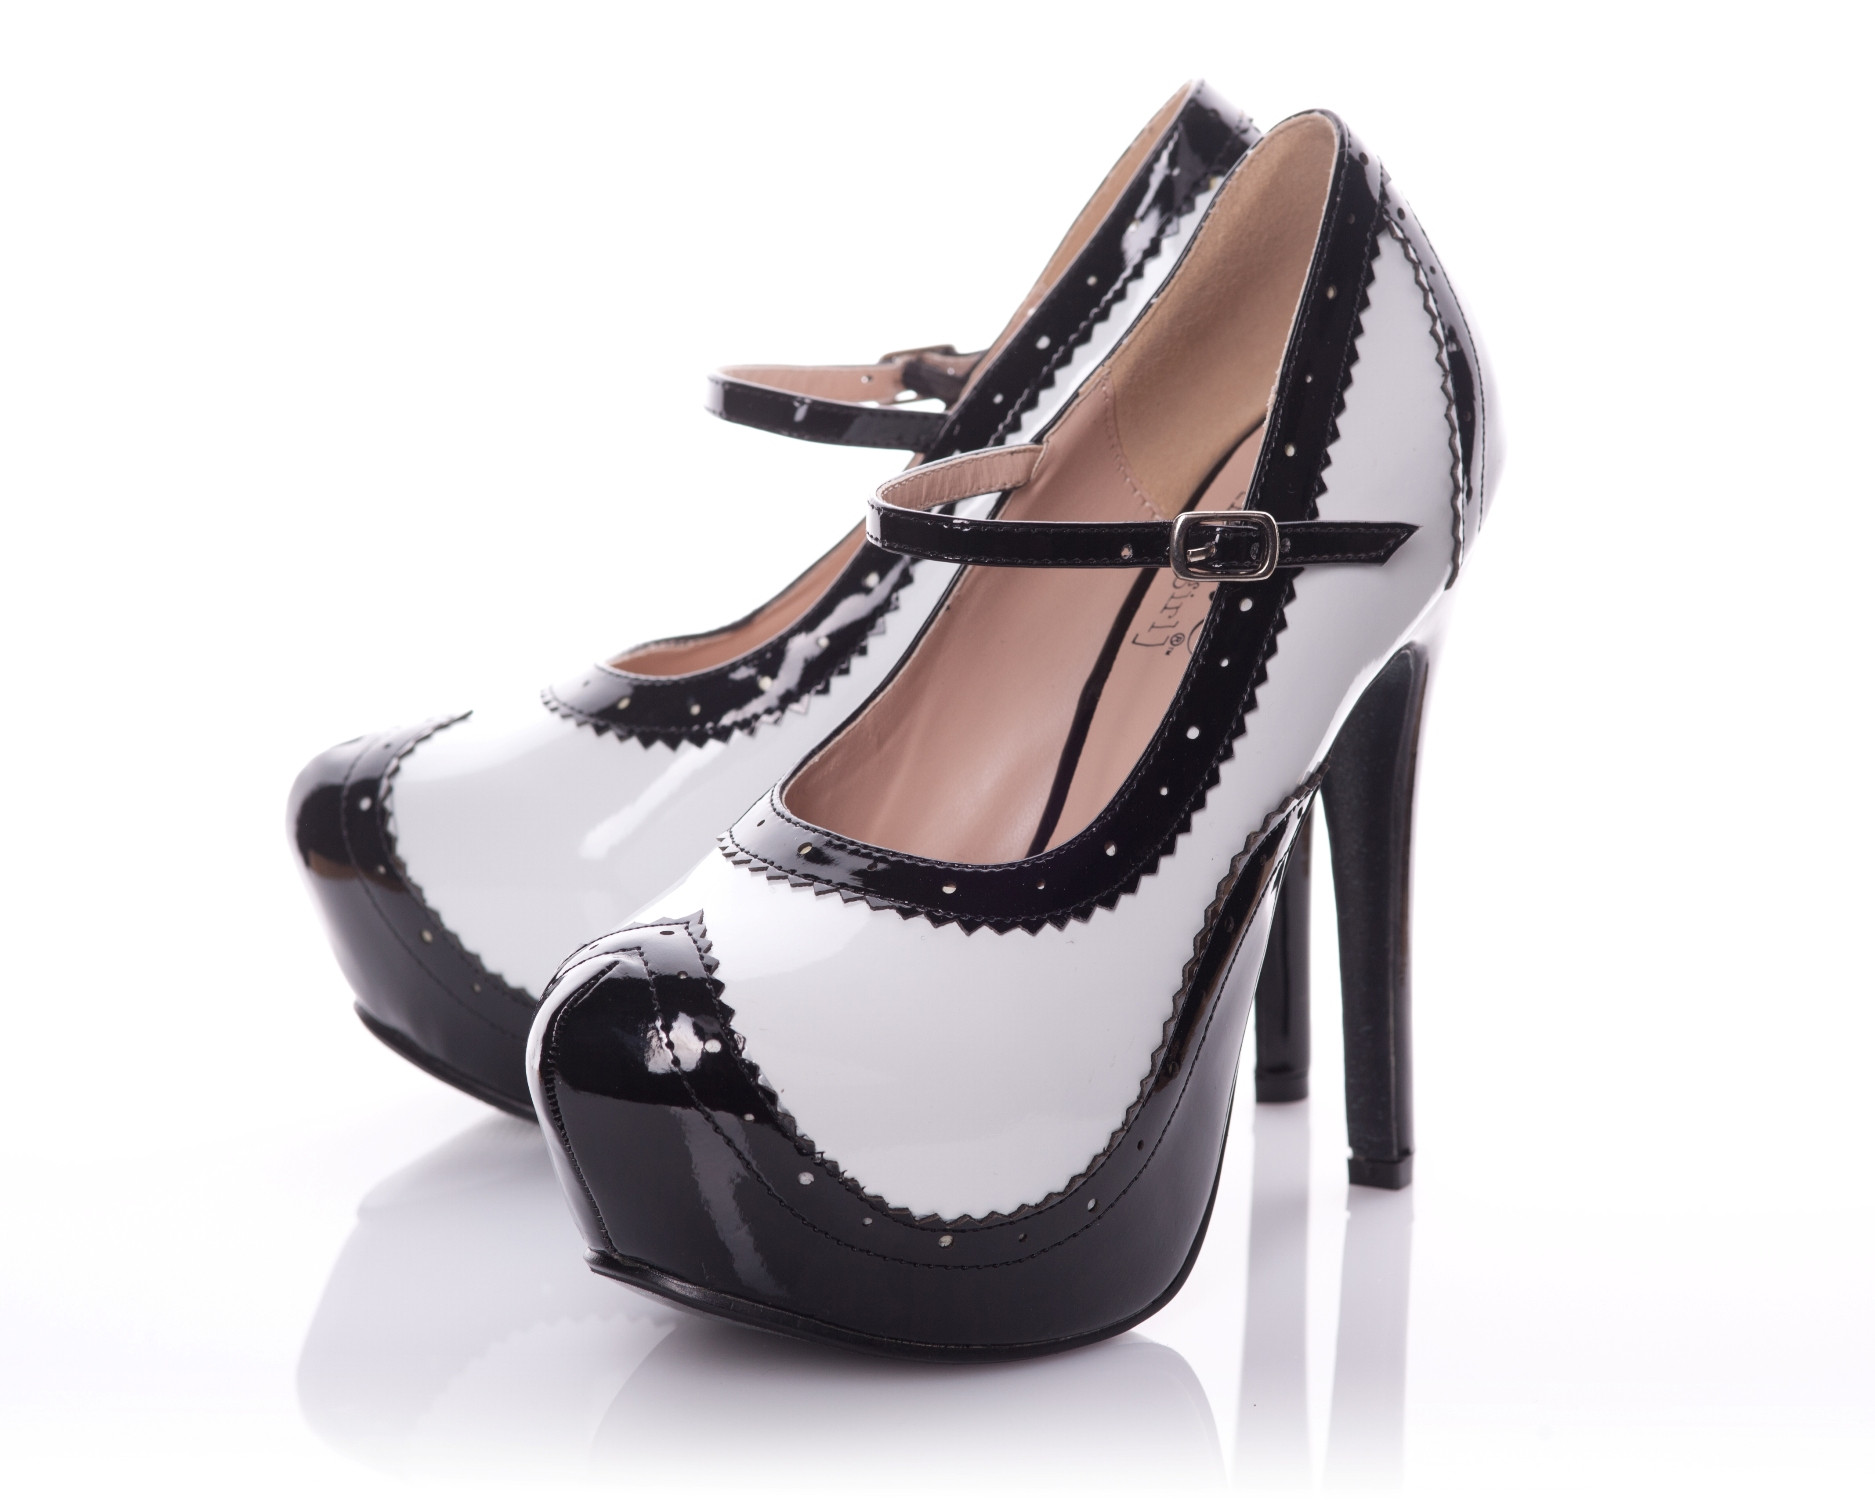 Patent Rounded Toe Platform Pump In Black With White Contrast